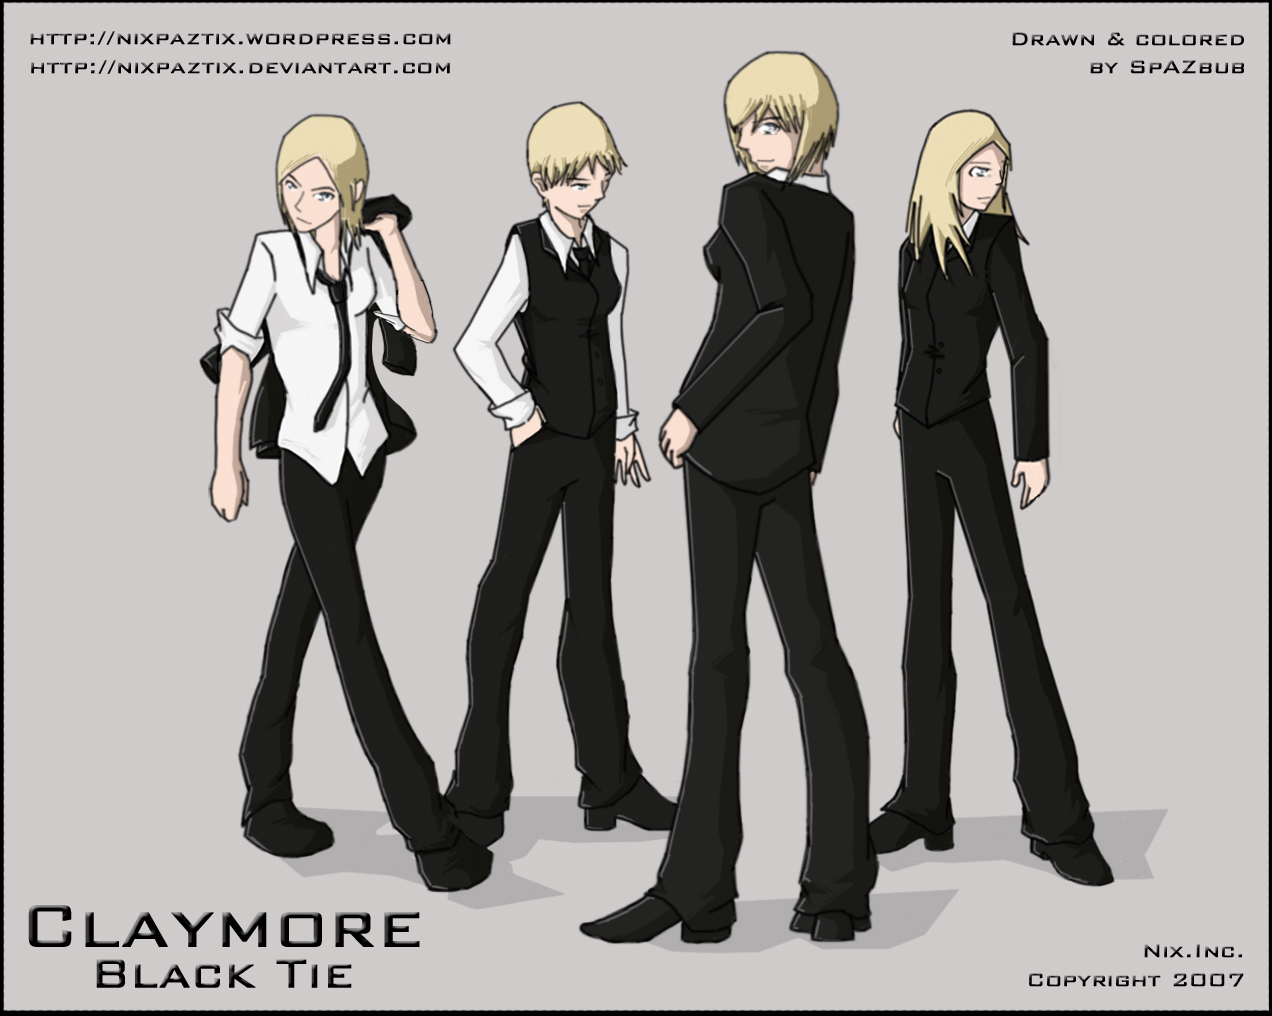 Anime Characters In Suits : Claymore black tie pocky for the motherfuckin win